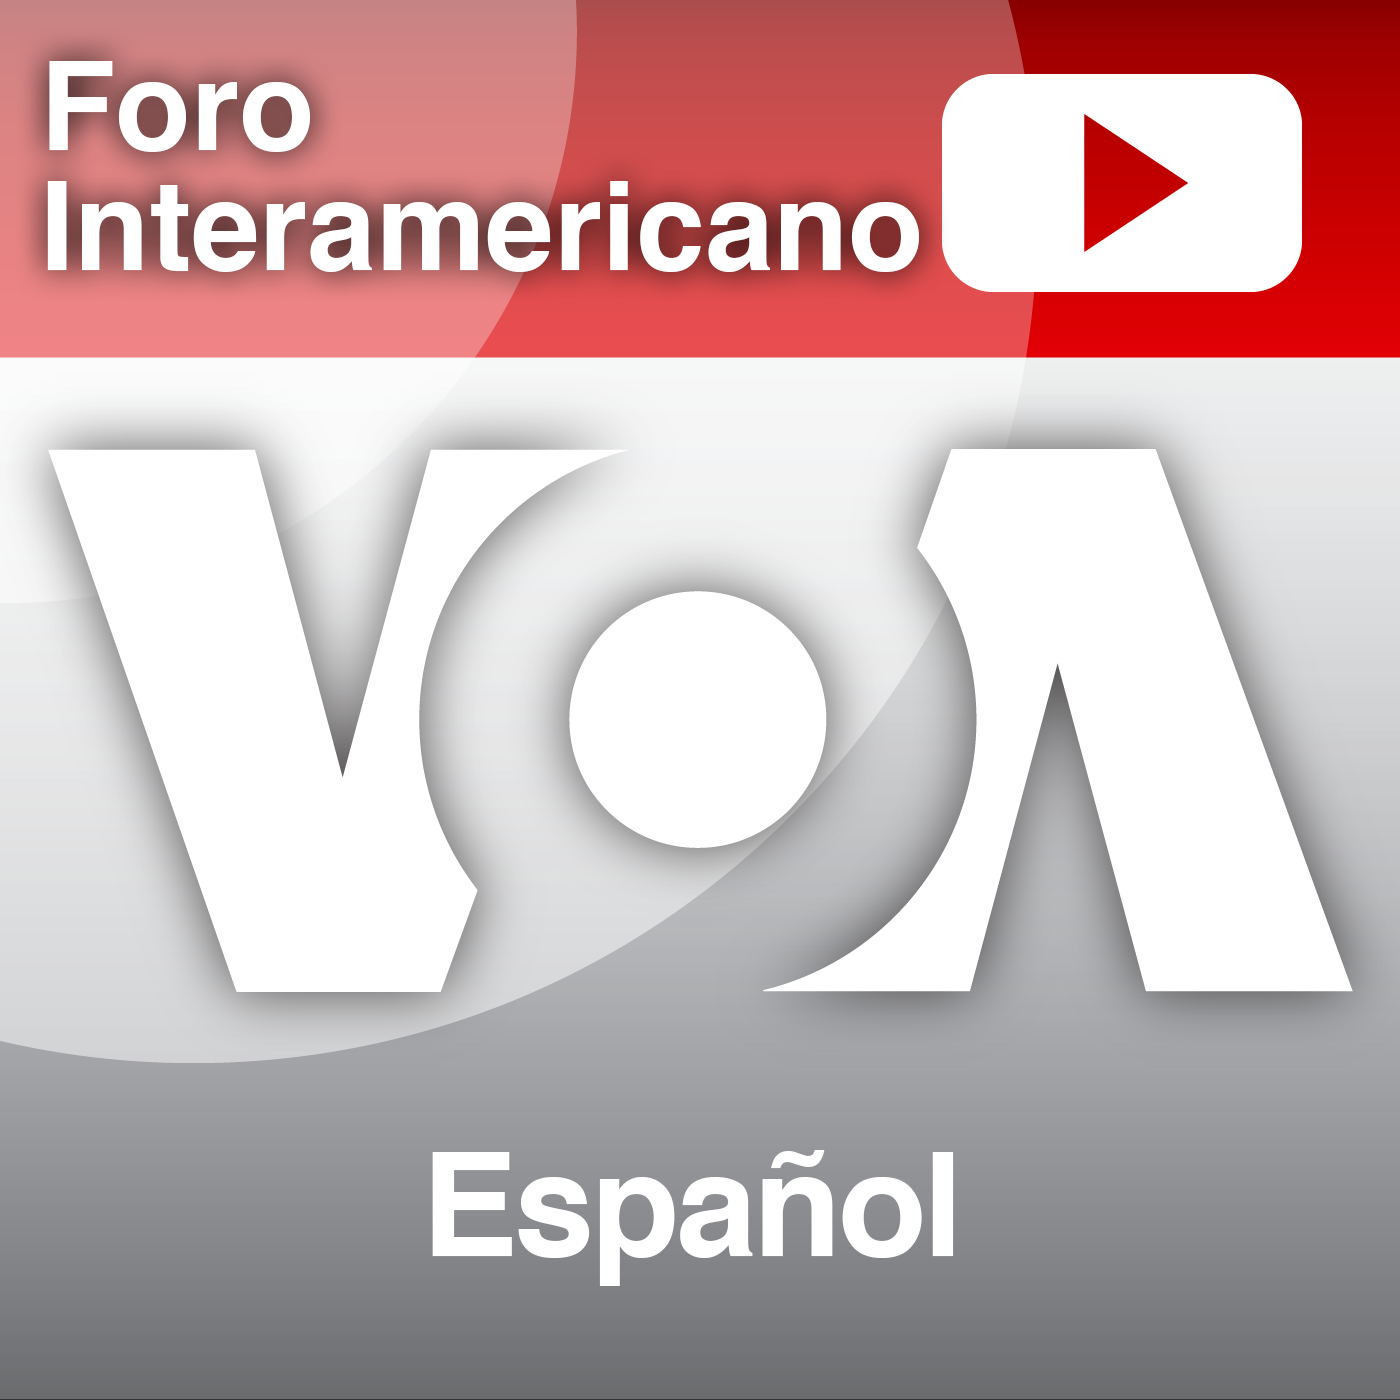 Foro Interamericano - Voice of America